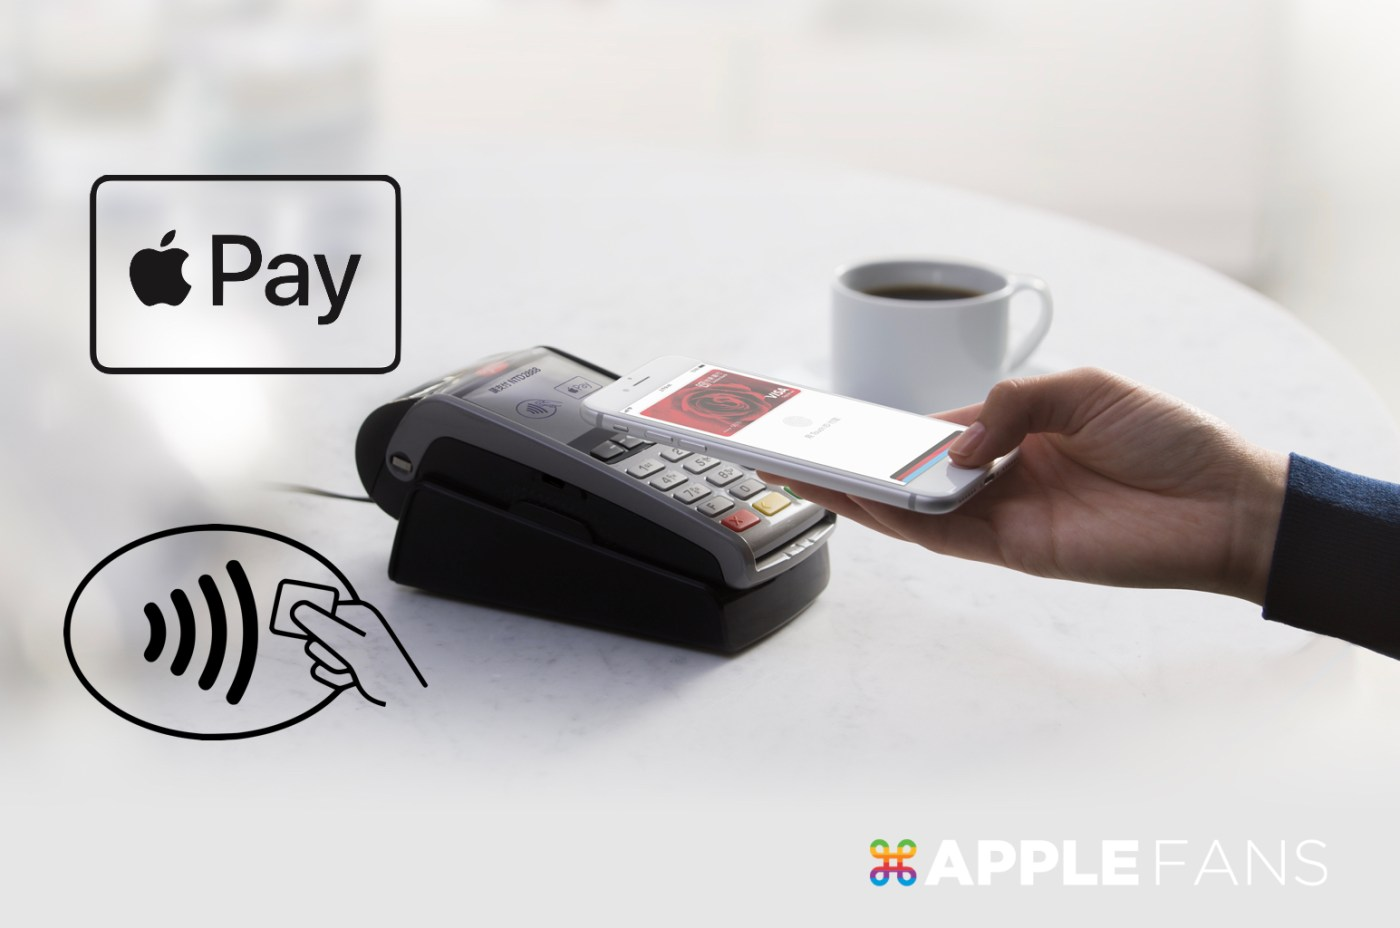 Apple Pay 金融卡